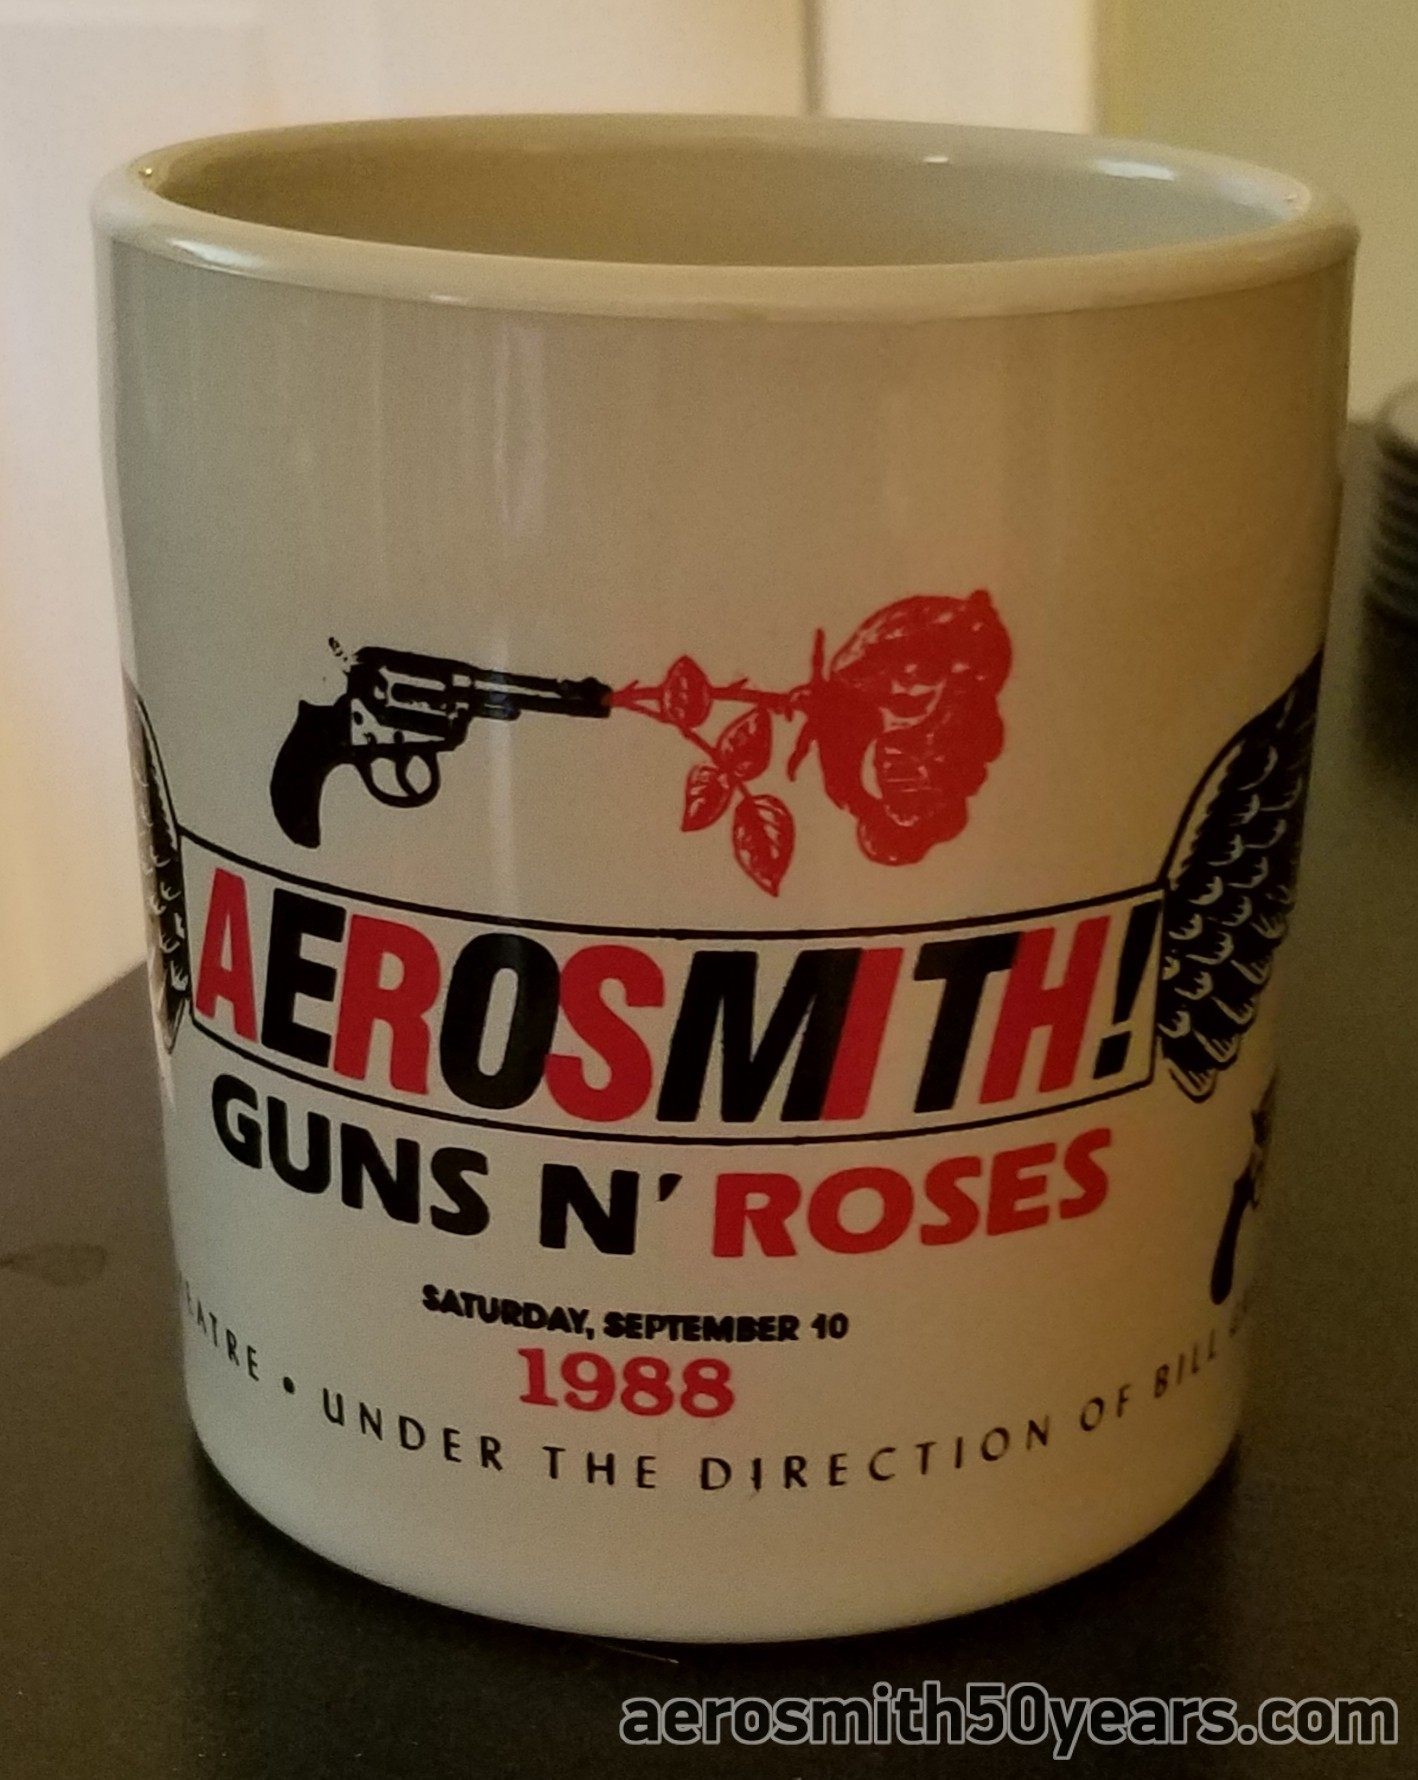 Aerosmith / G'N'R – September 10th, 1988 Shoreline Amphitheater, Mountain View, CA. Promotional Cup